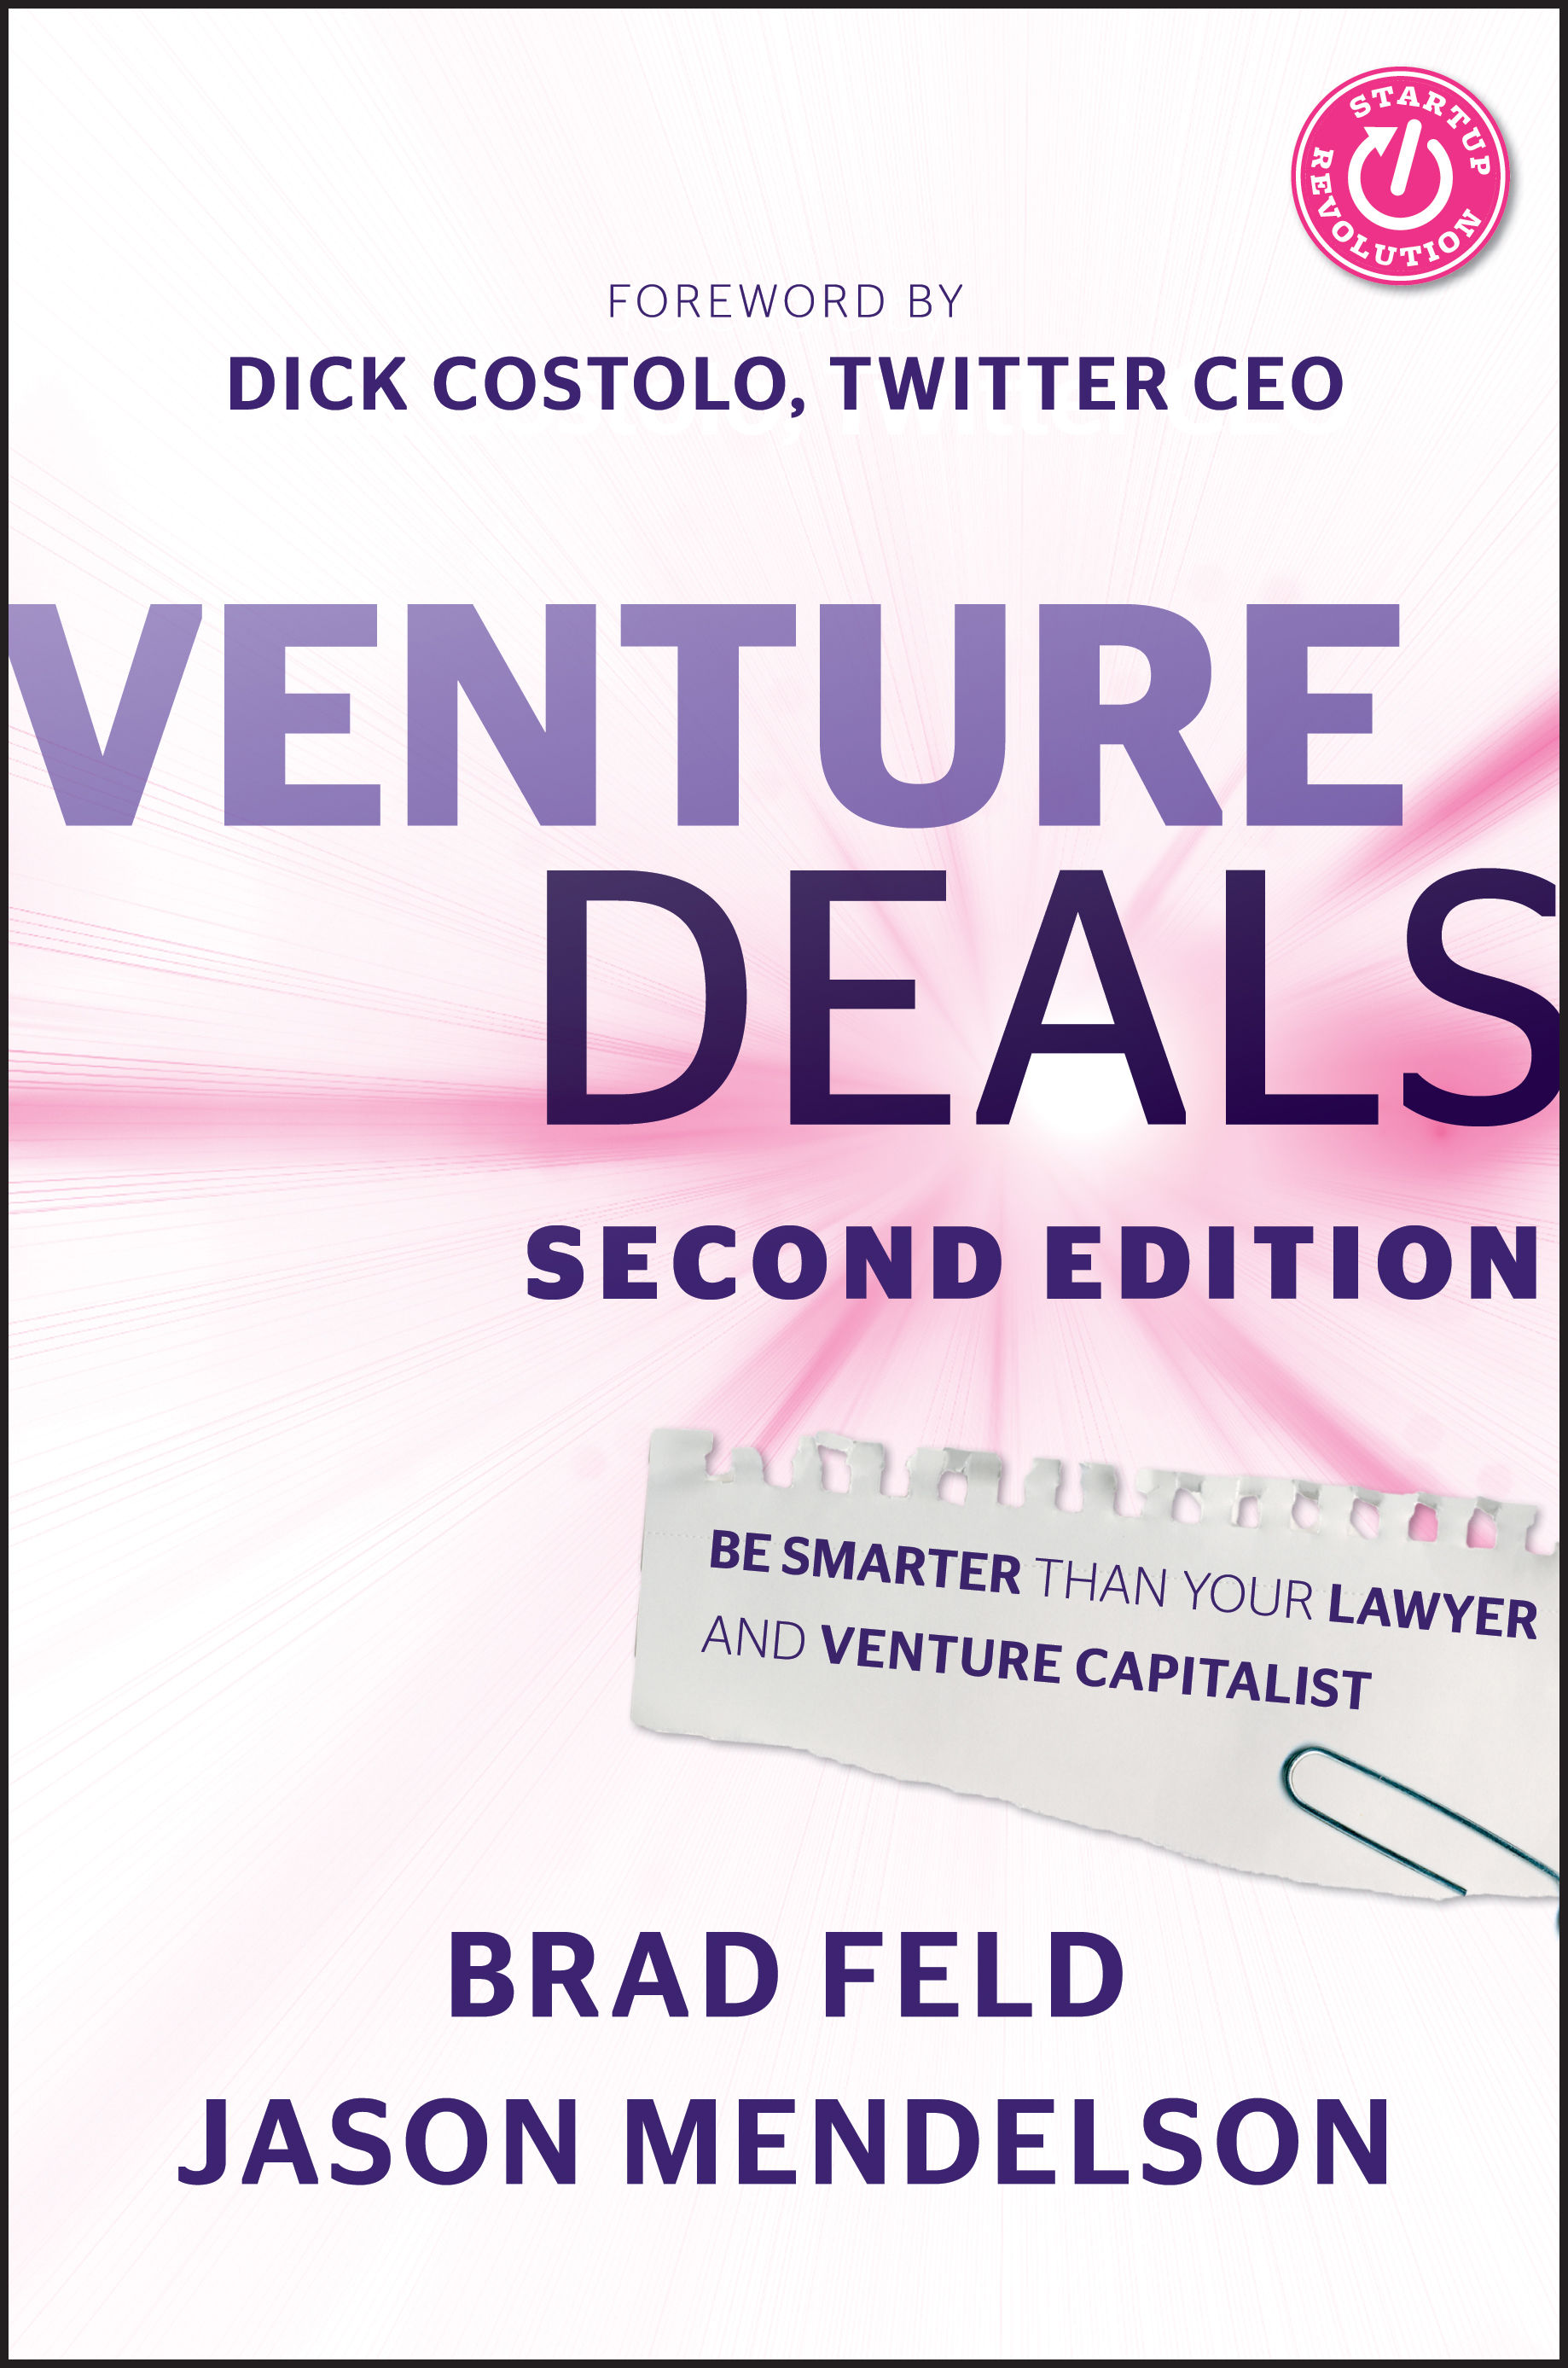 Venture Deals book cover by Brad Feld and Jason Mendelson